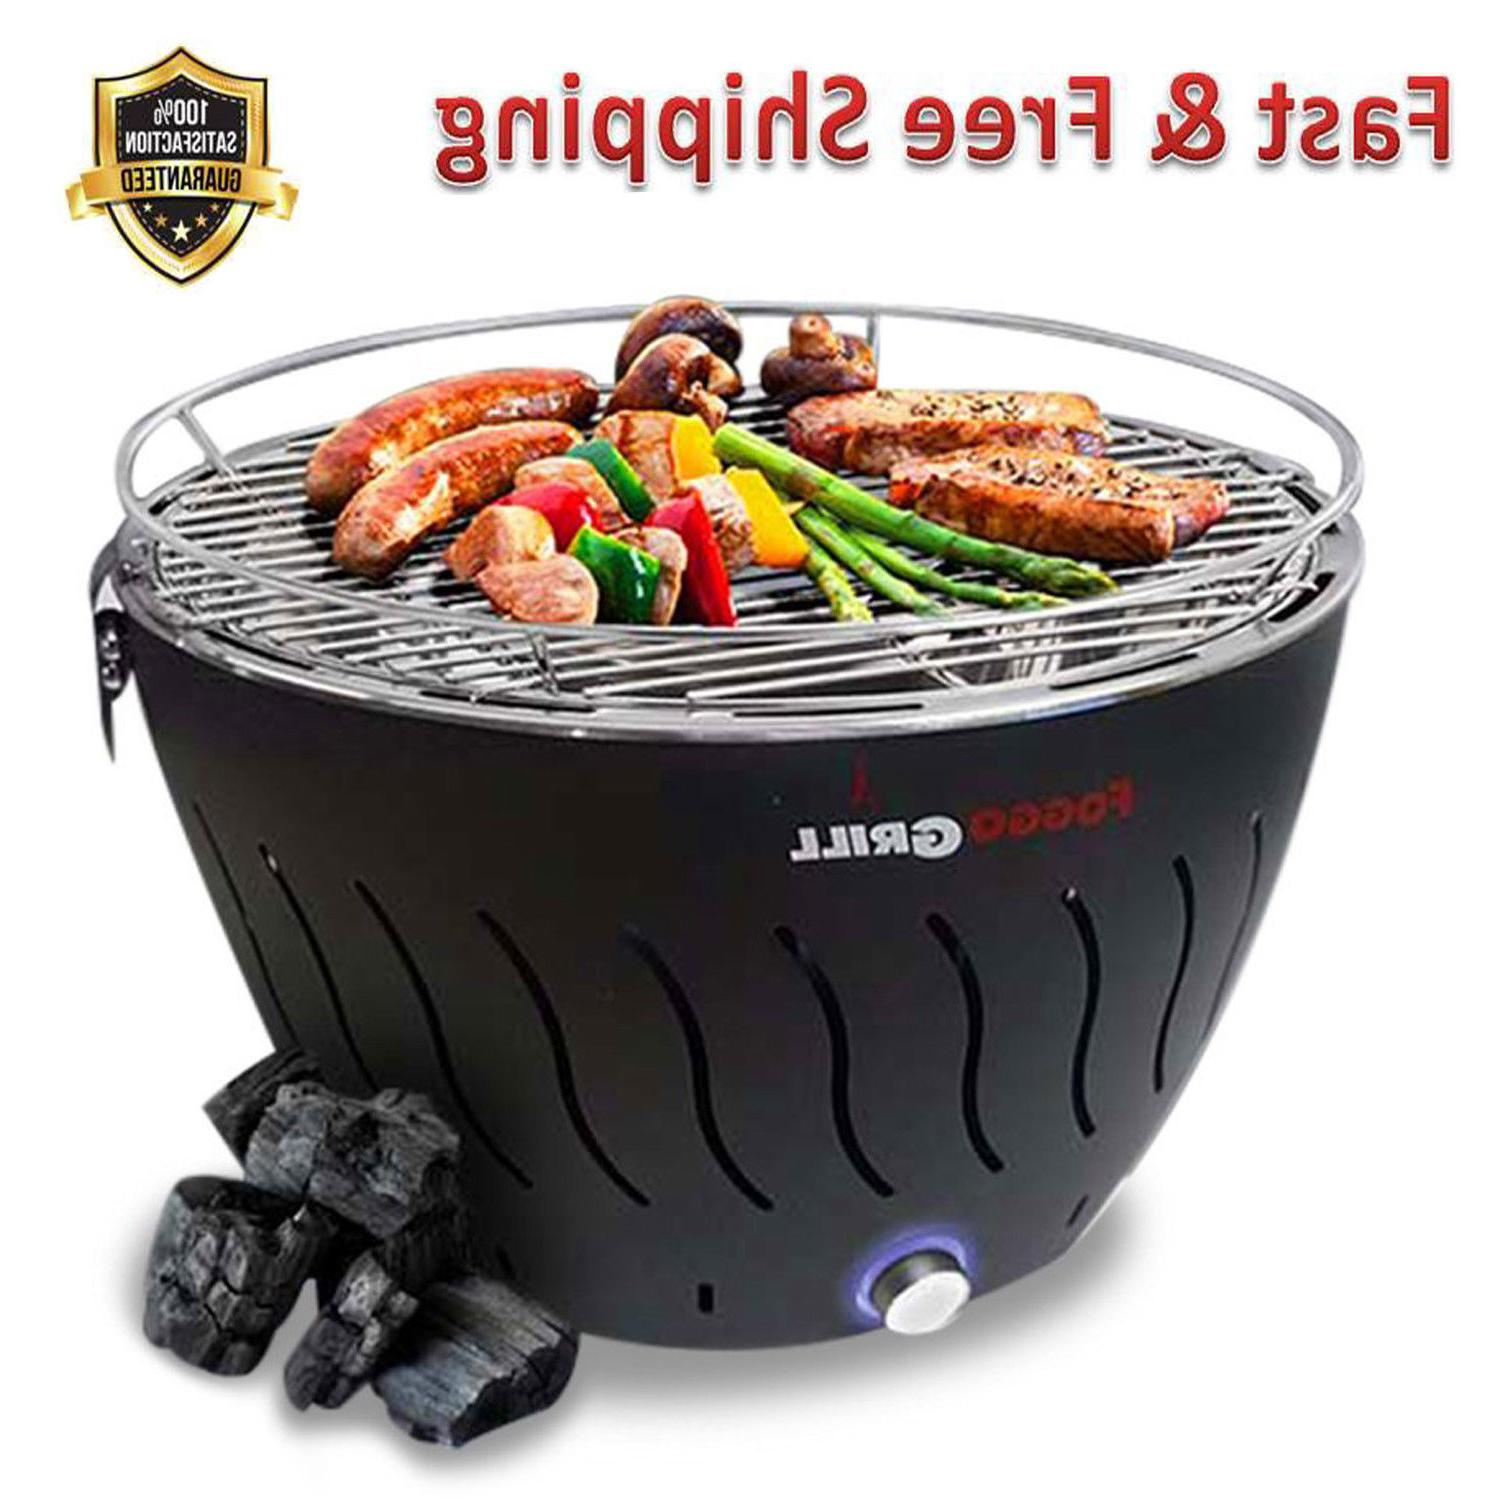 portable grill smokeless stainless steel electric indoor